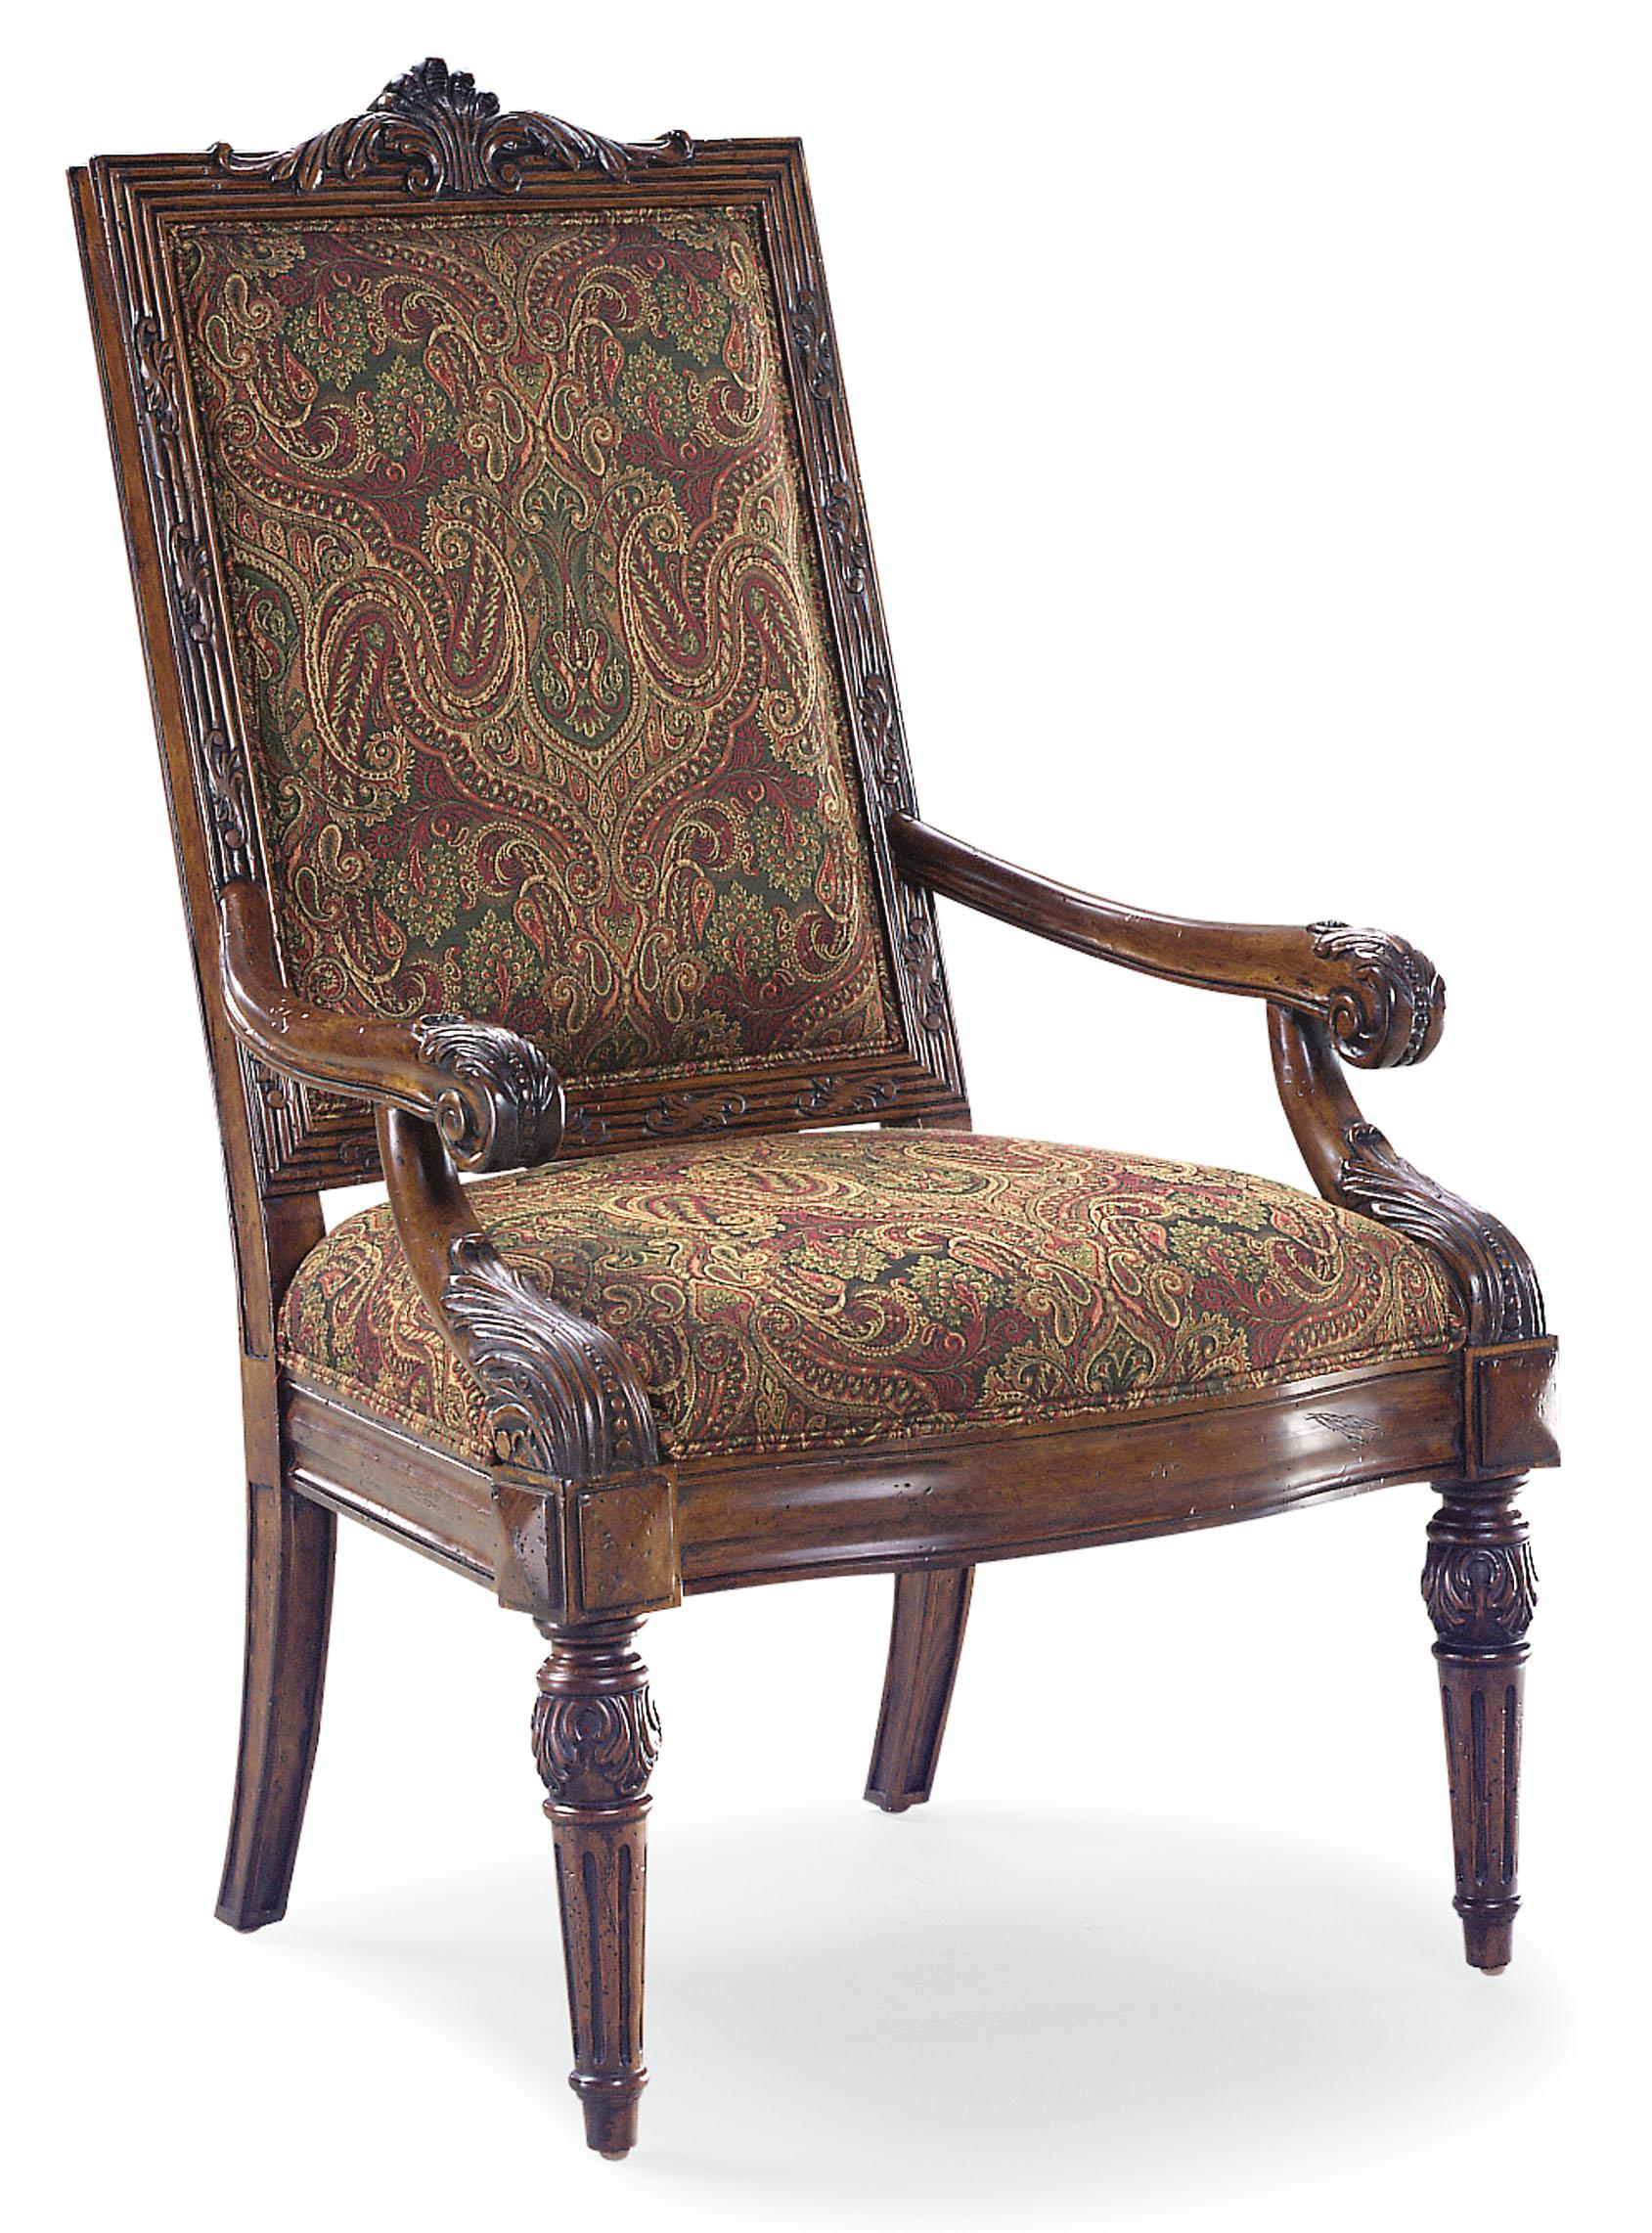 Fairfield Chairs Exposed Wood Chair - Item Number: 5441-01